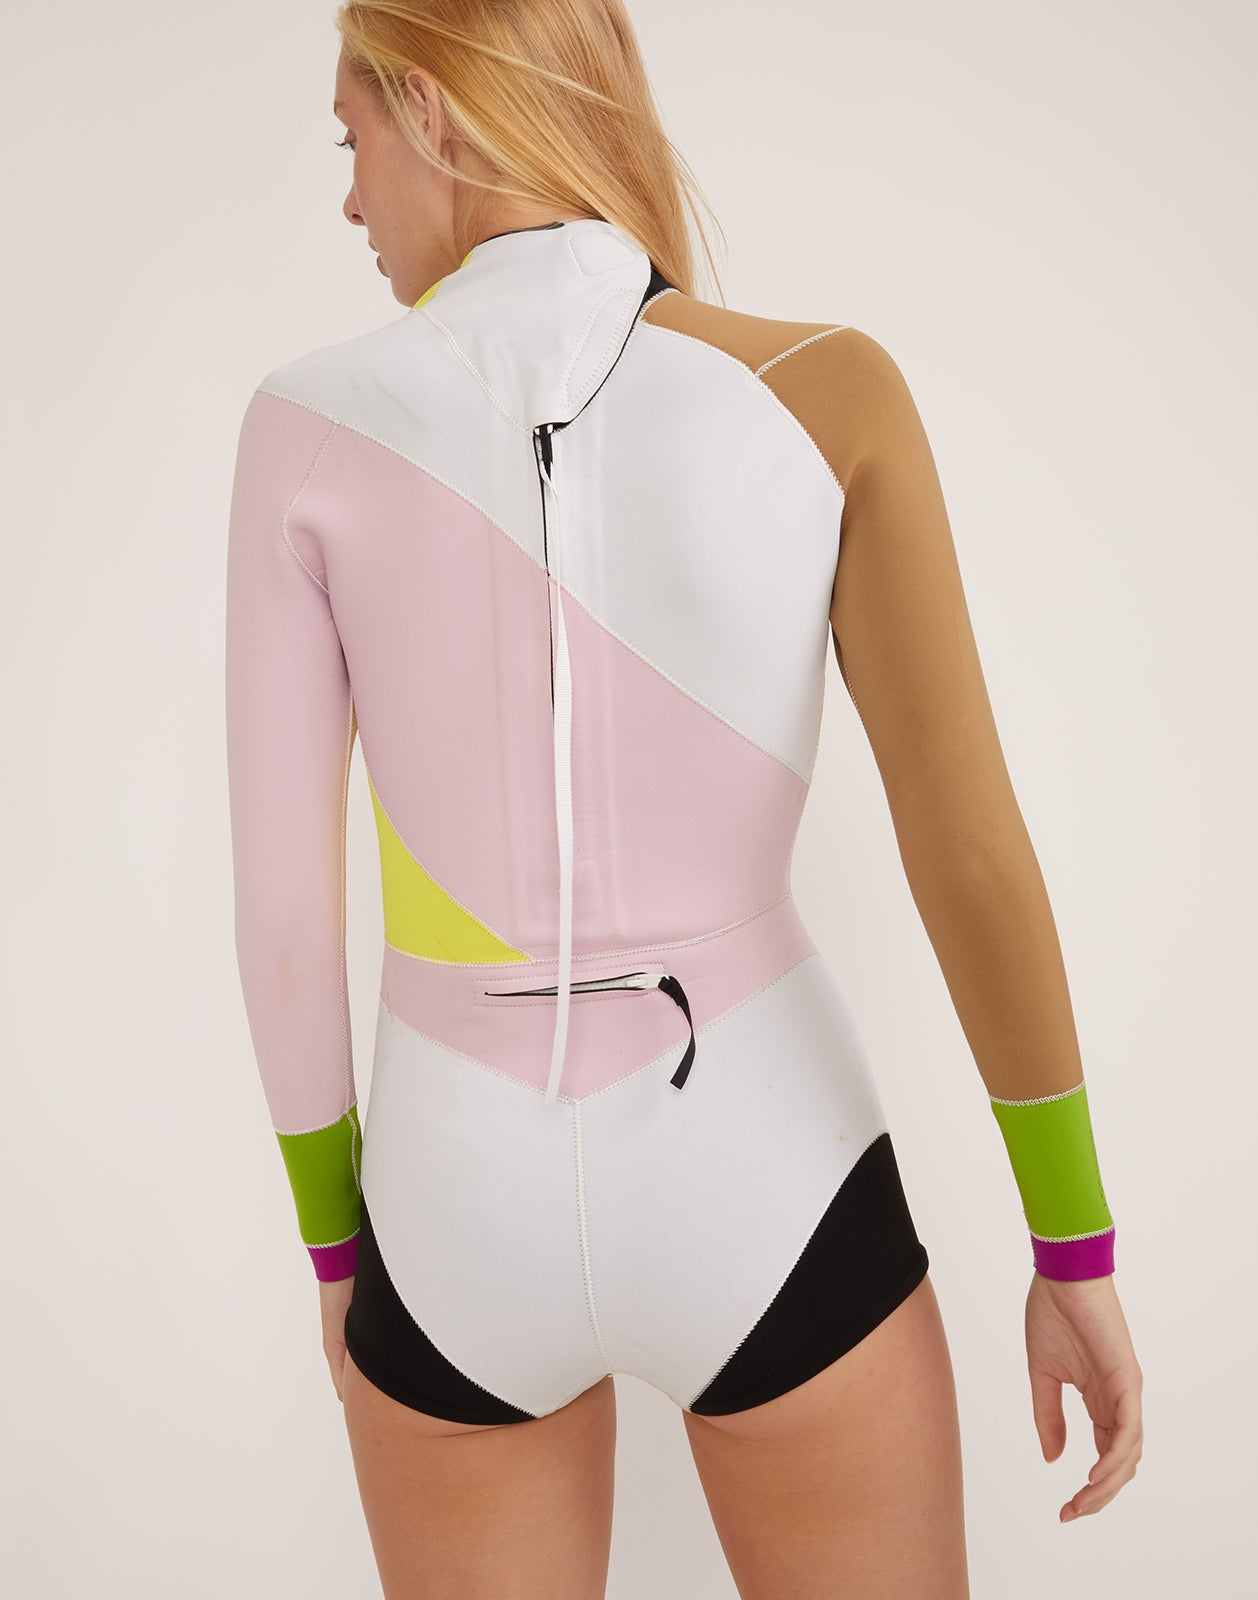 Back view of asymmetrical design Quincy Wetsuit with long sleeves